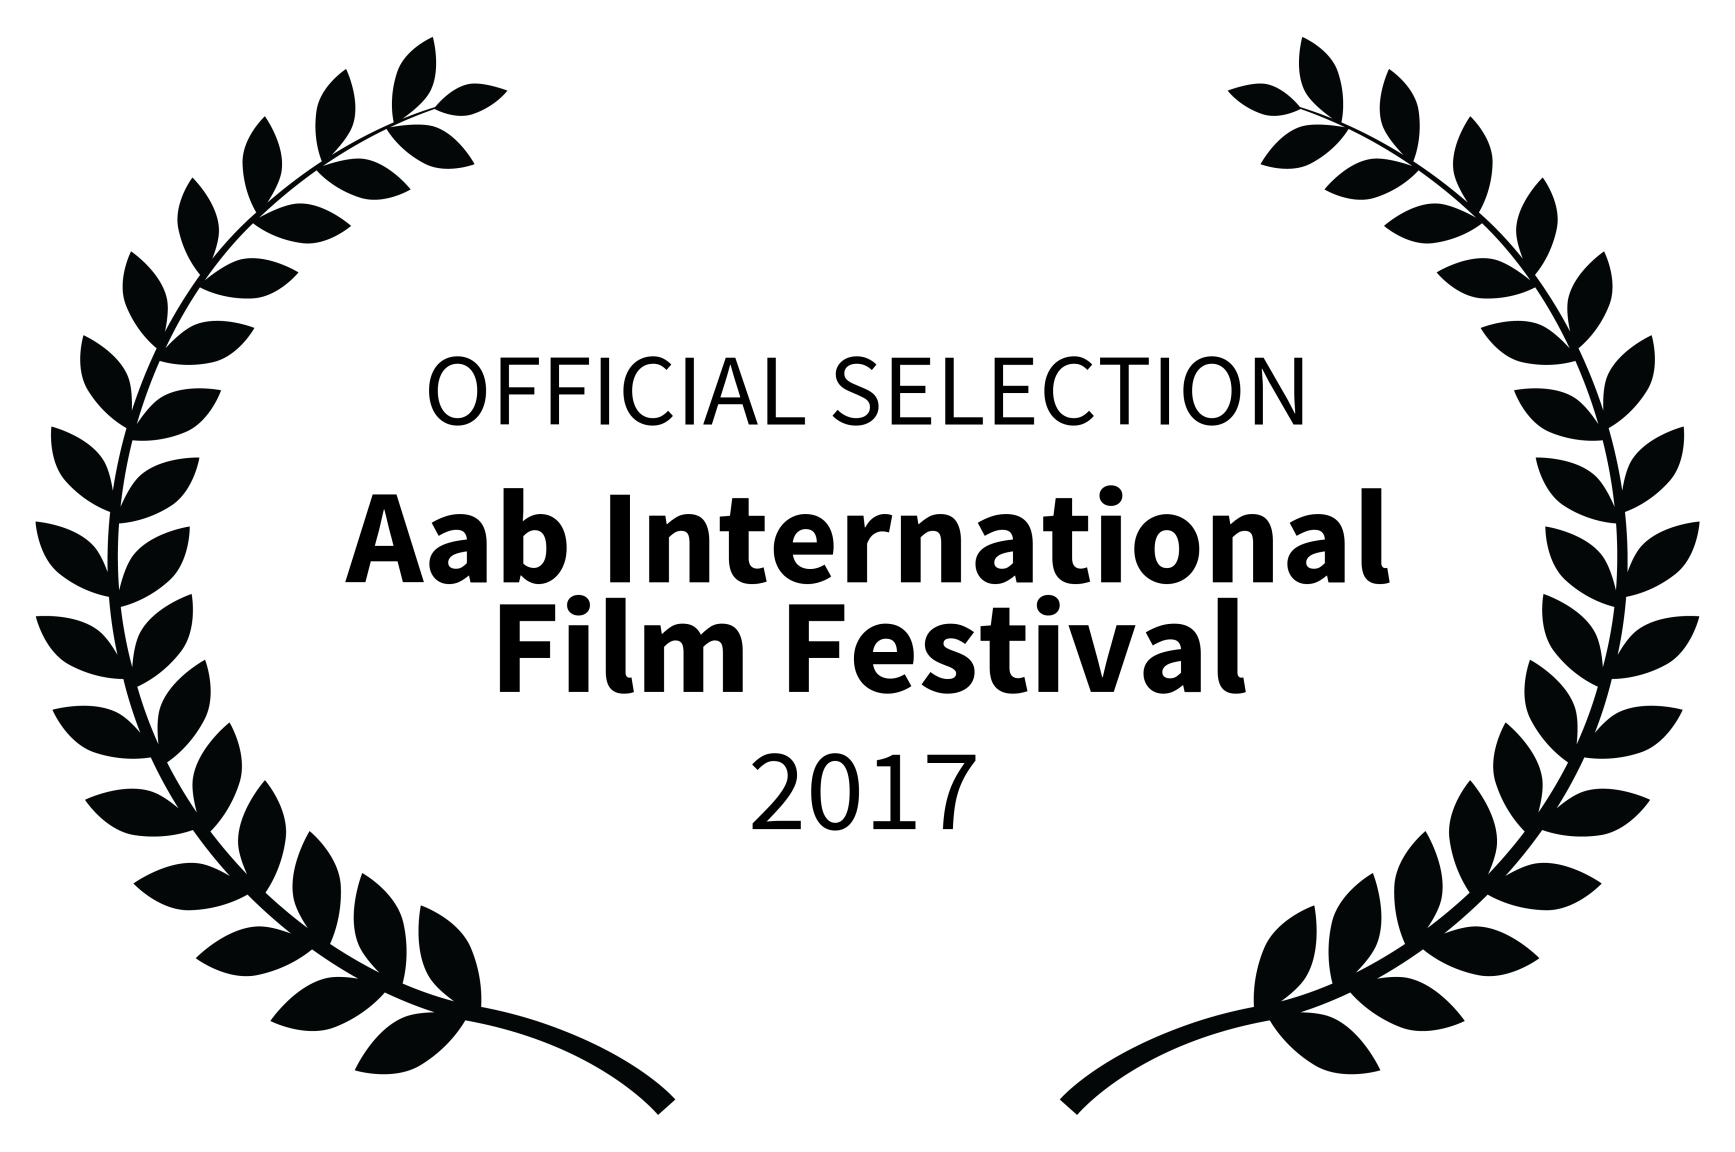 OFFICIAL SELECTION - Aab International Film Festival - 2017